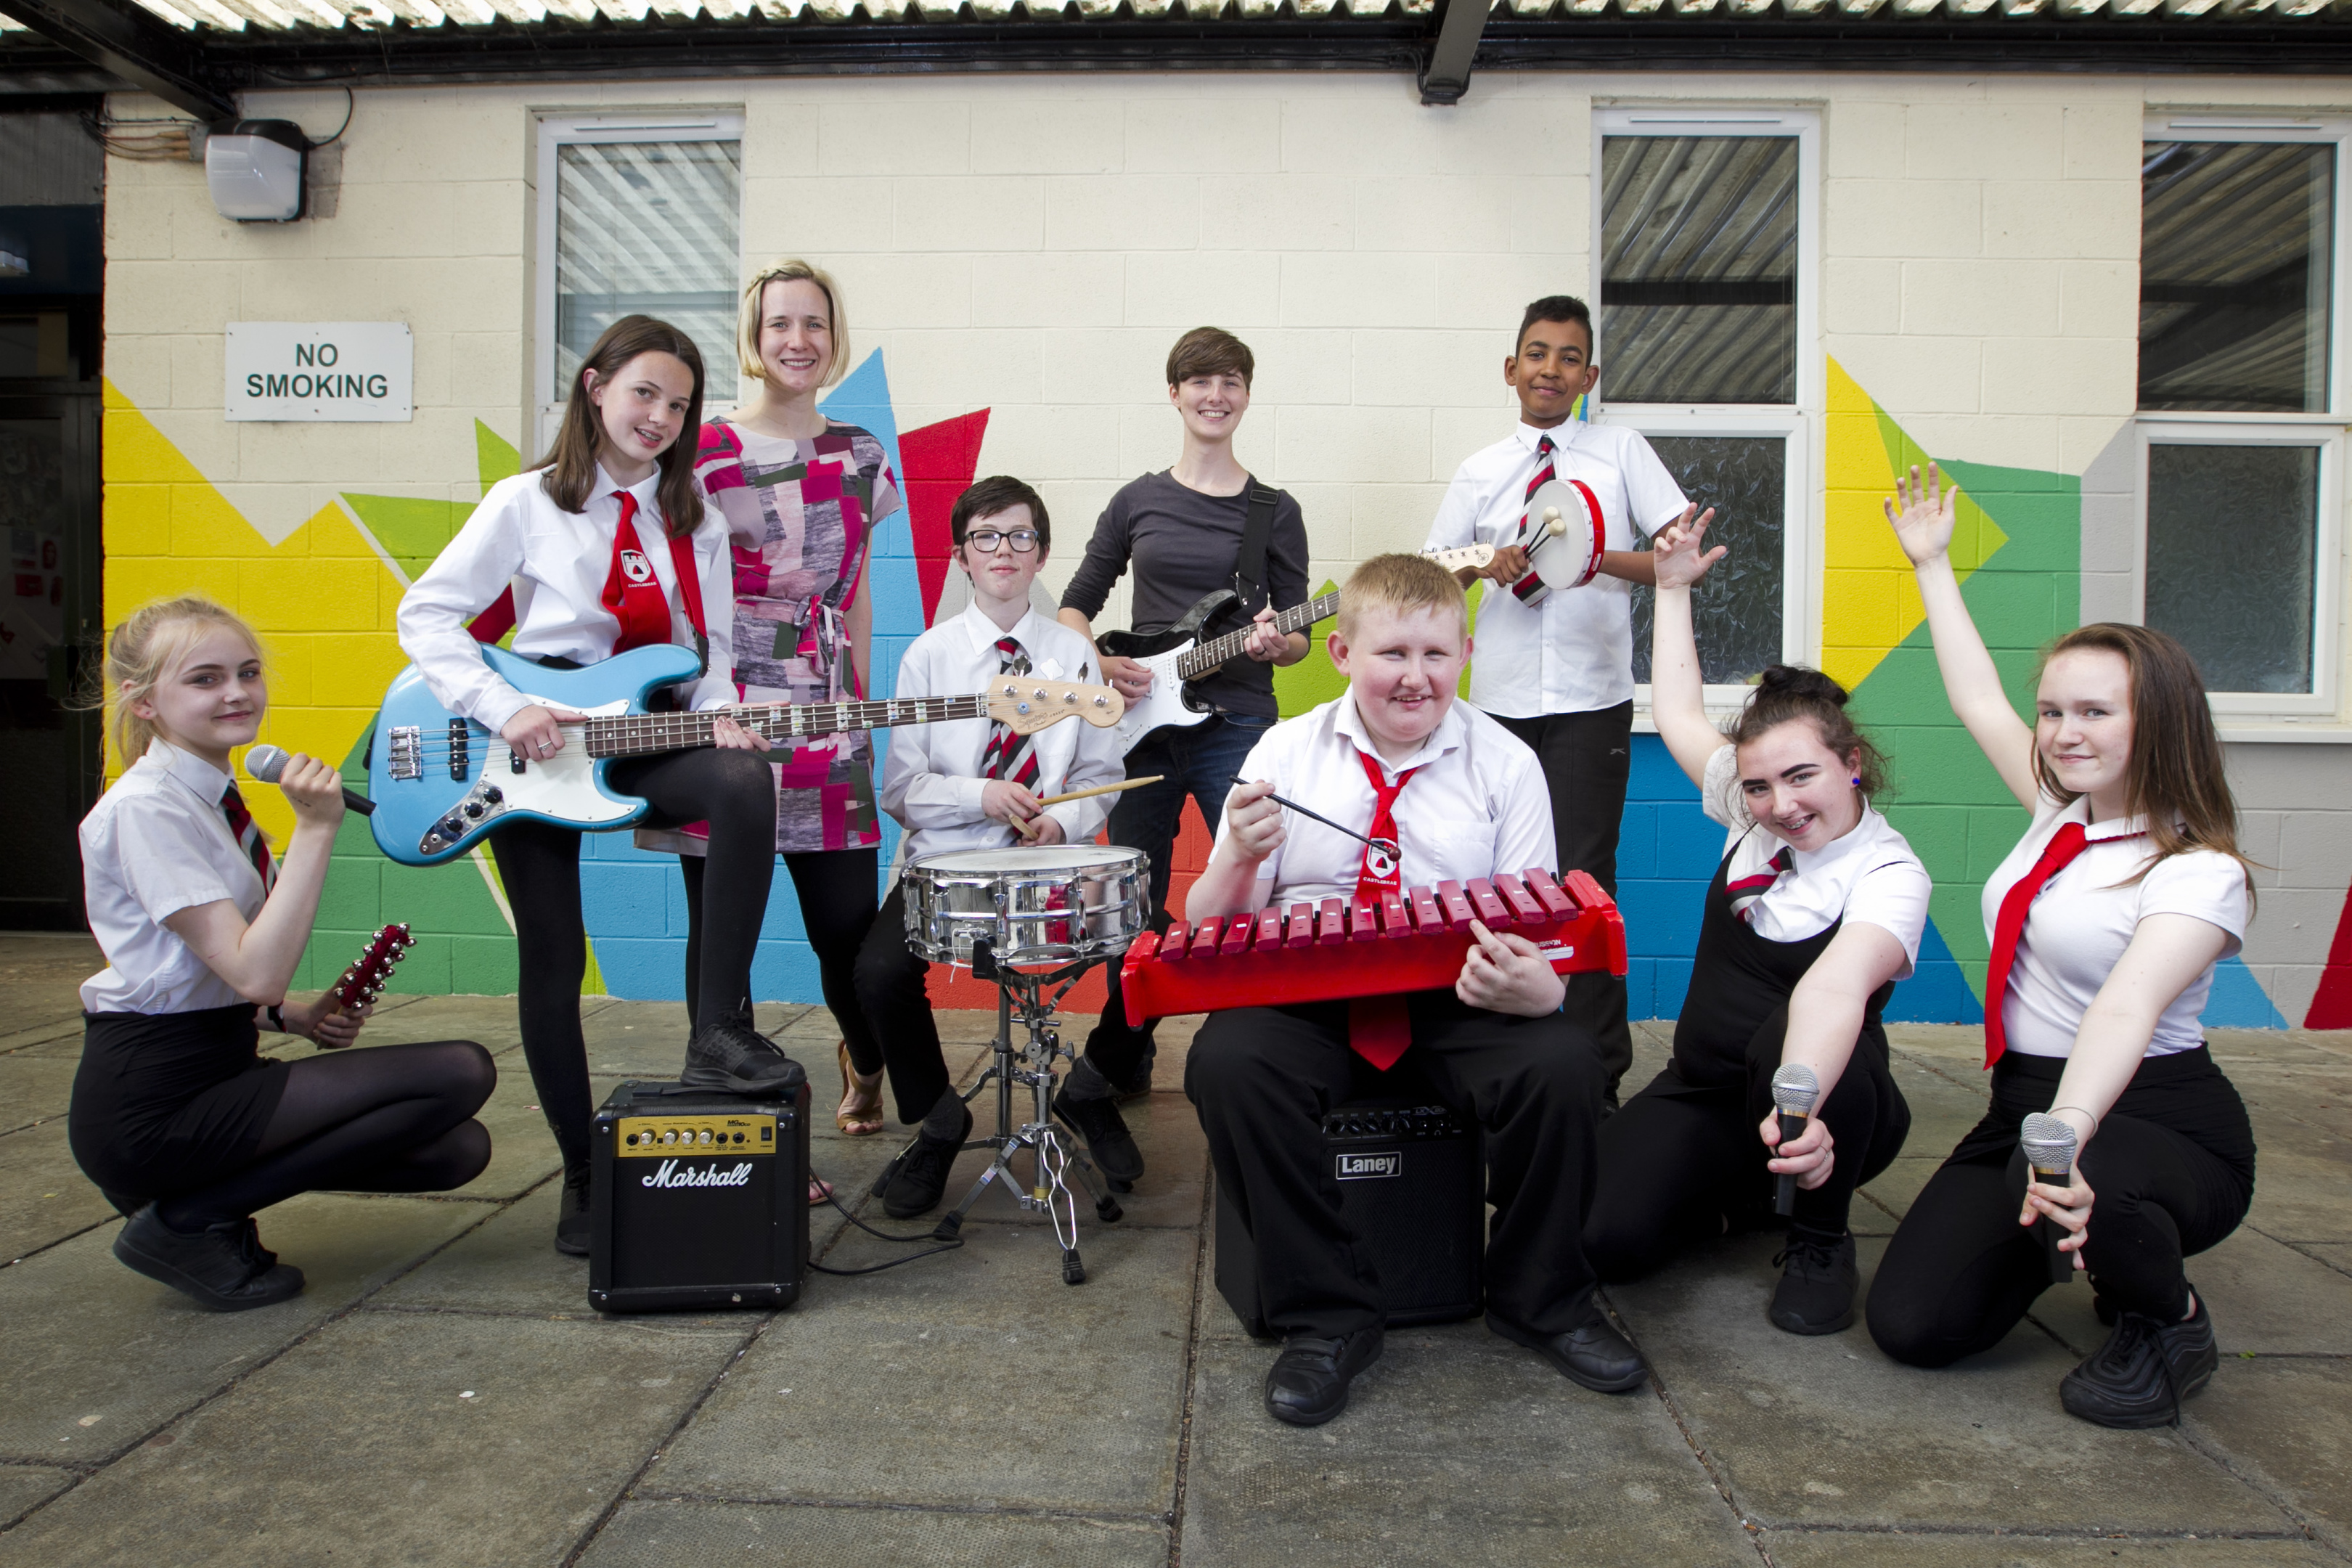 Pupils at Castlebrae High School in Edinburgh, who have recorded a song (Andrew Cawley / DC Thomson)